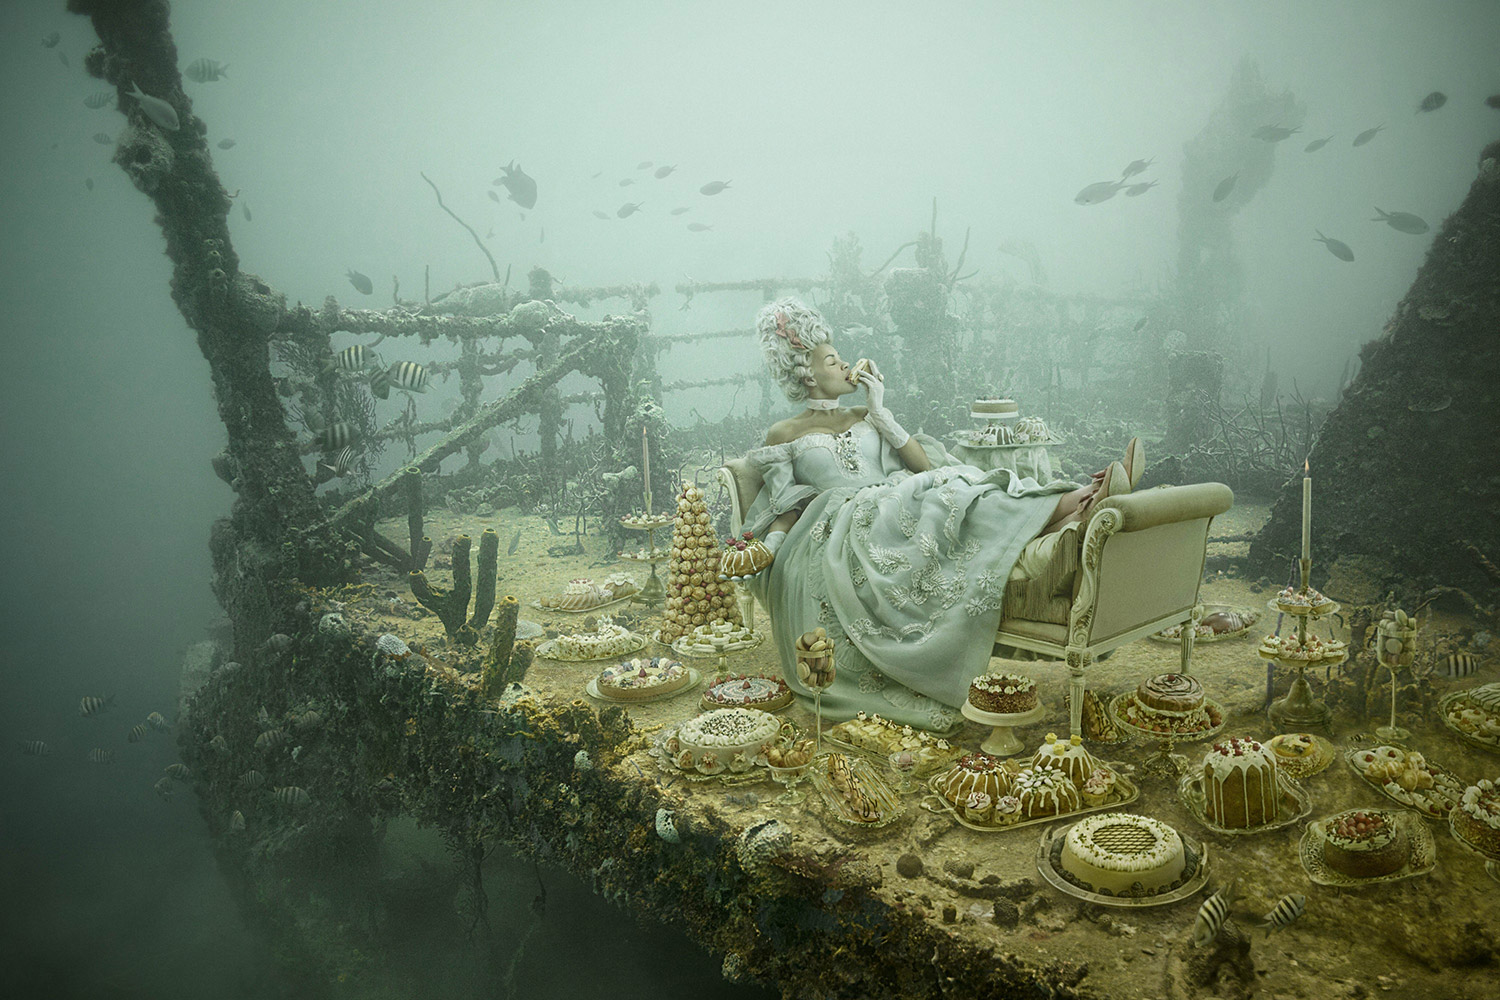 Andreas Franke - The Sinking World, lounging